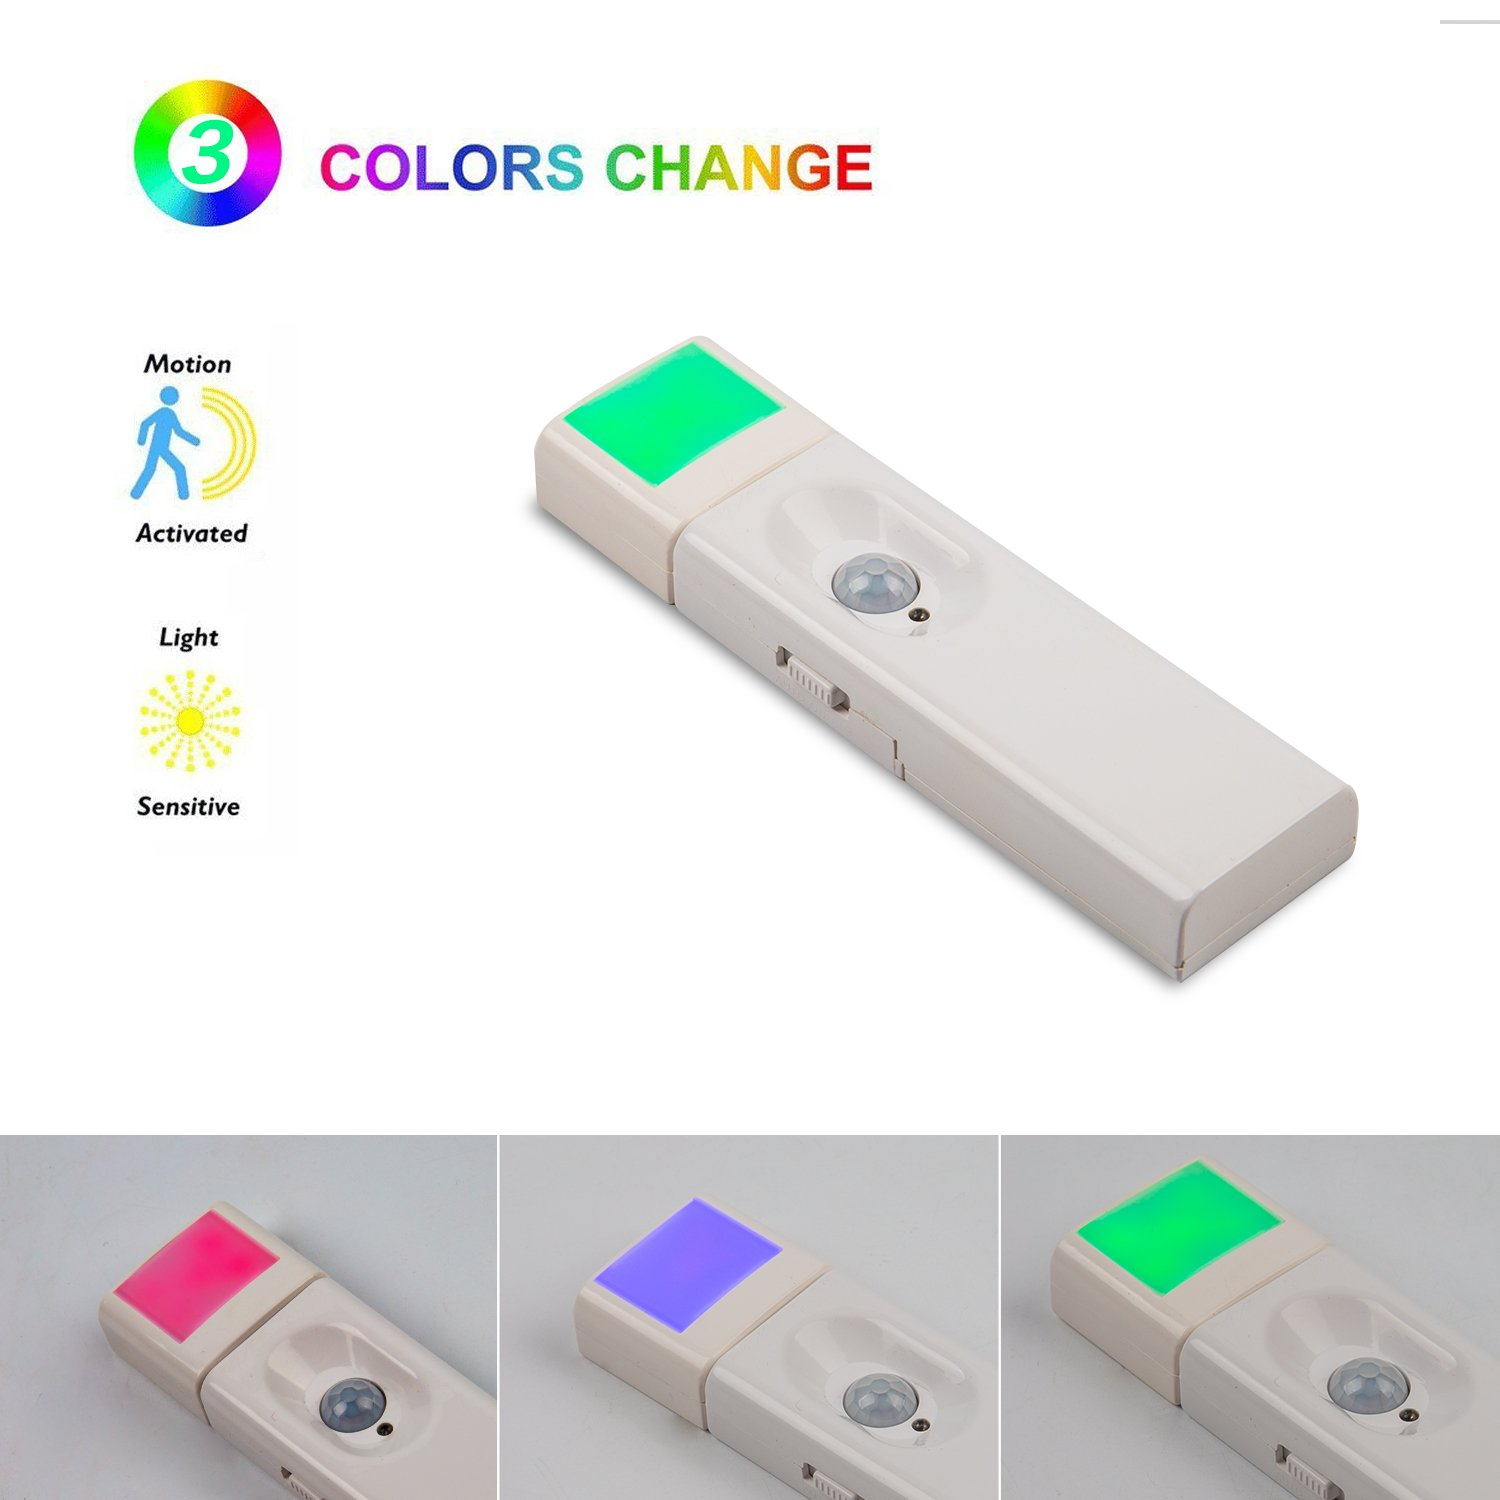 Aokairuisi Motion Sensor Night Light Battery Operated Stick-on Anywhere 3 Color Wall Light for Bedroom,Stair,Hallway,Garage,Baby Room,Entrance